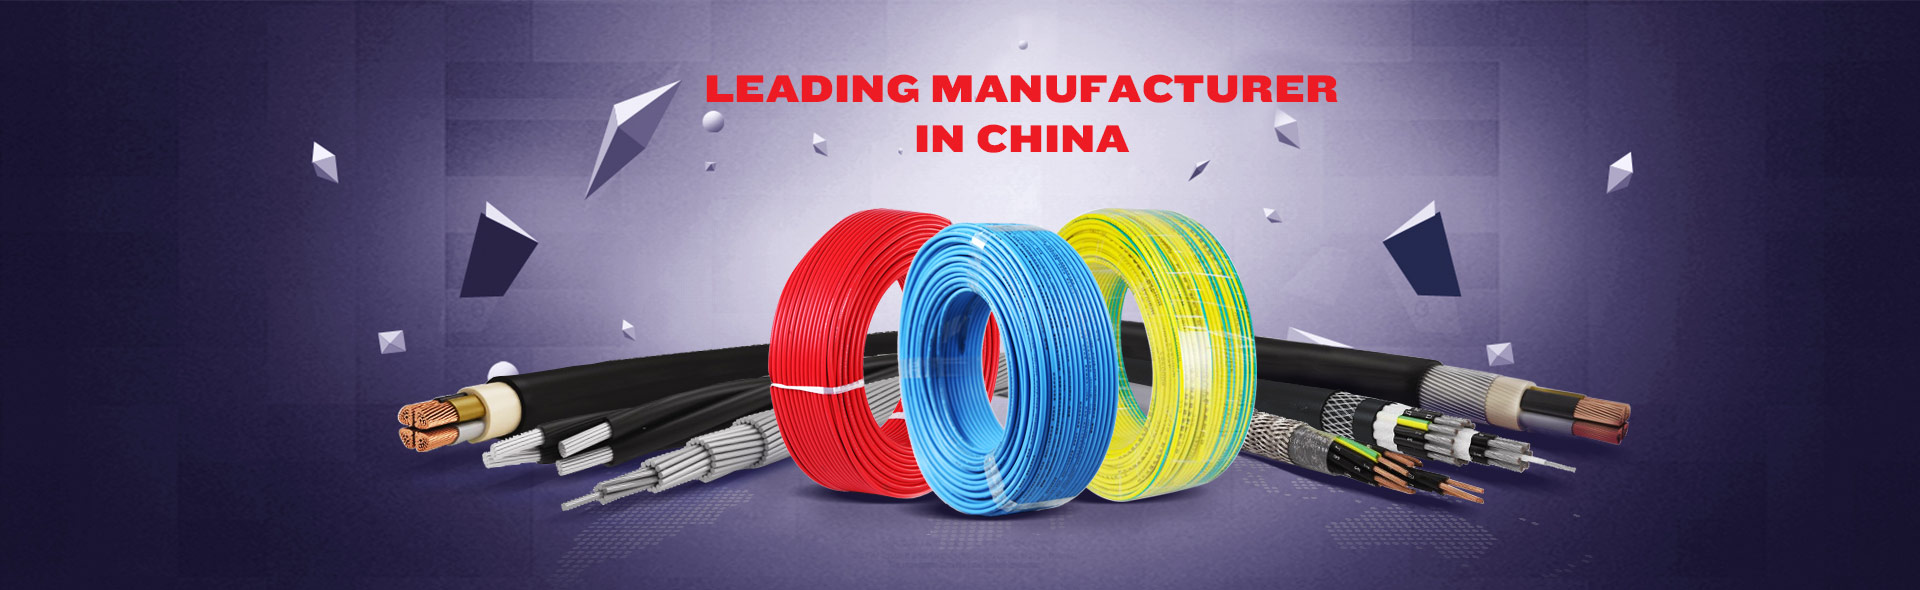 electric wire,electrical cable,pvc cable,aluminum cable,flexible flat cable,single core flexible Cable,twin and earth Cable,aluminum flat Cable